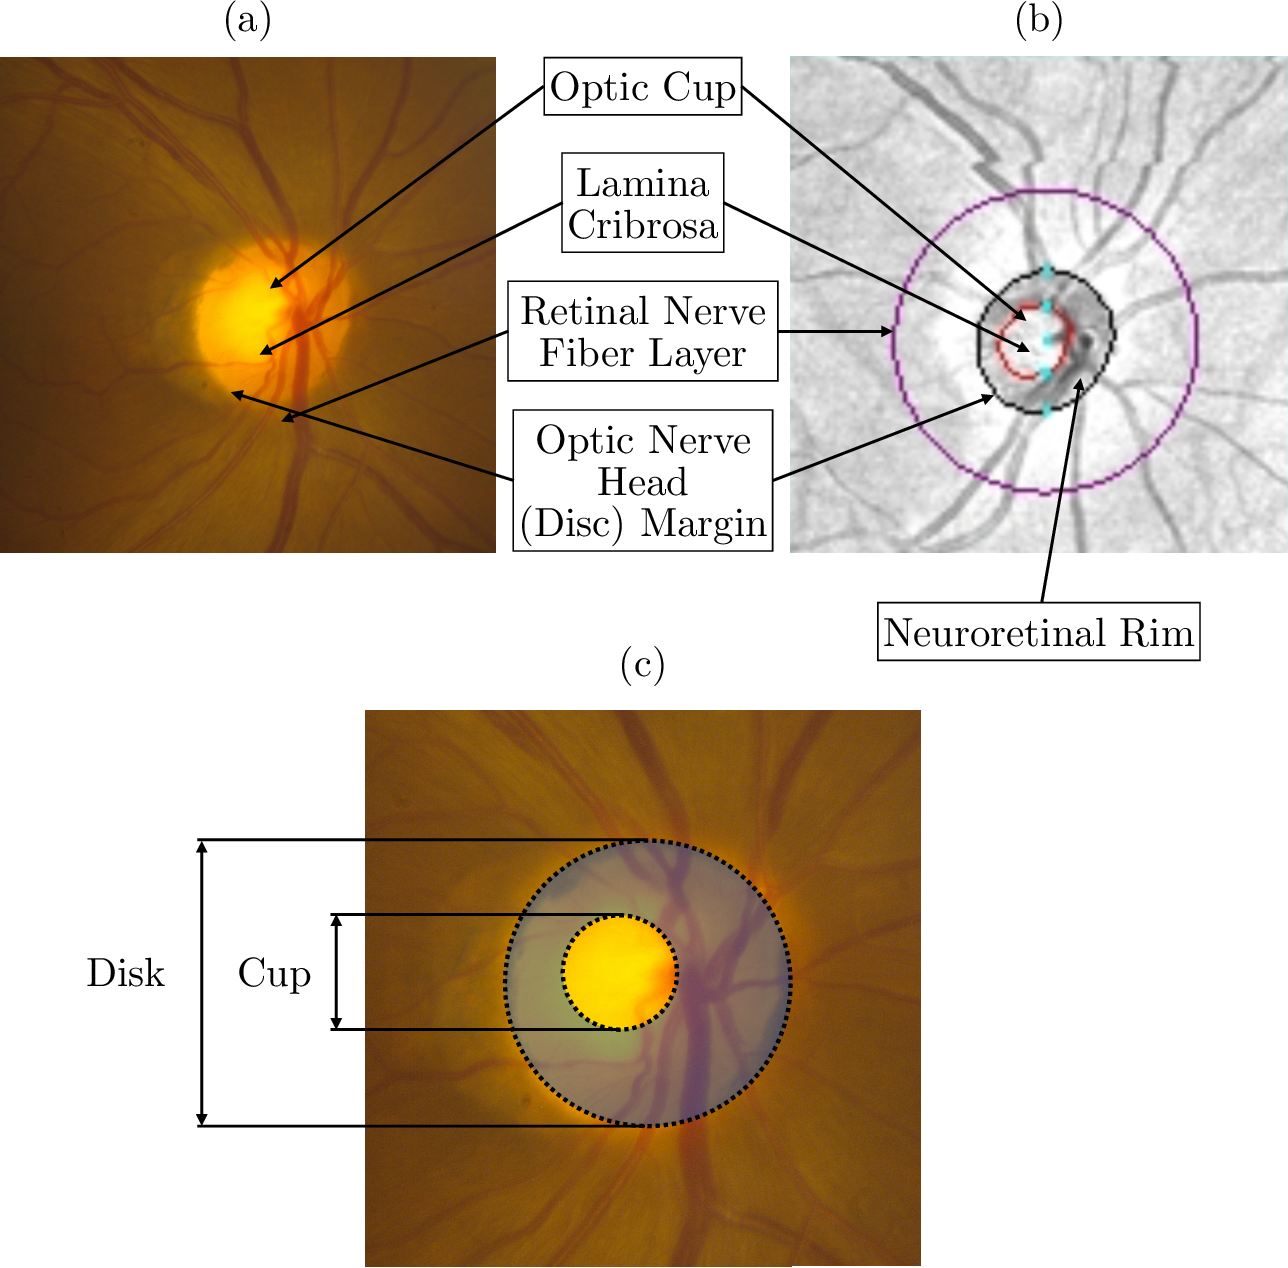 Figure 1 for Detecting Glaucoma Using 3D Convolutional Neural Network of Raw SD-OCT Optic Nerve Scans